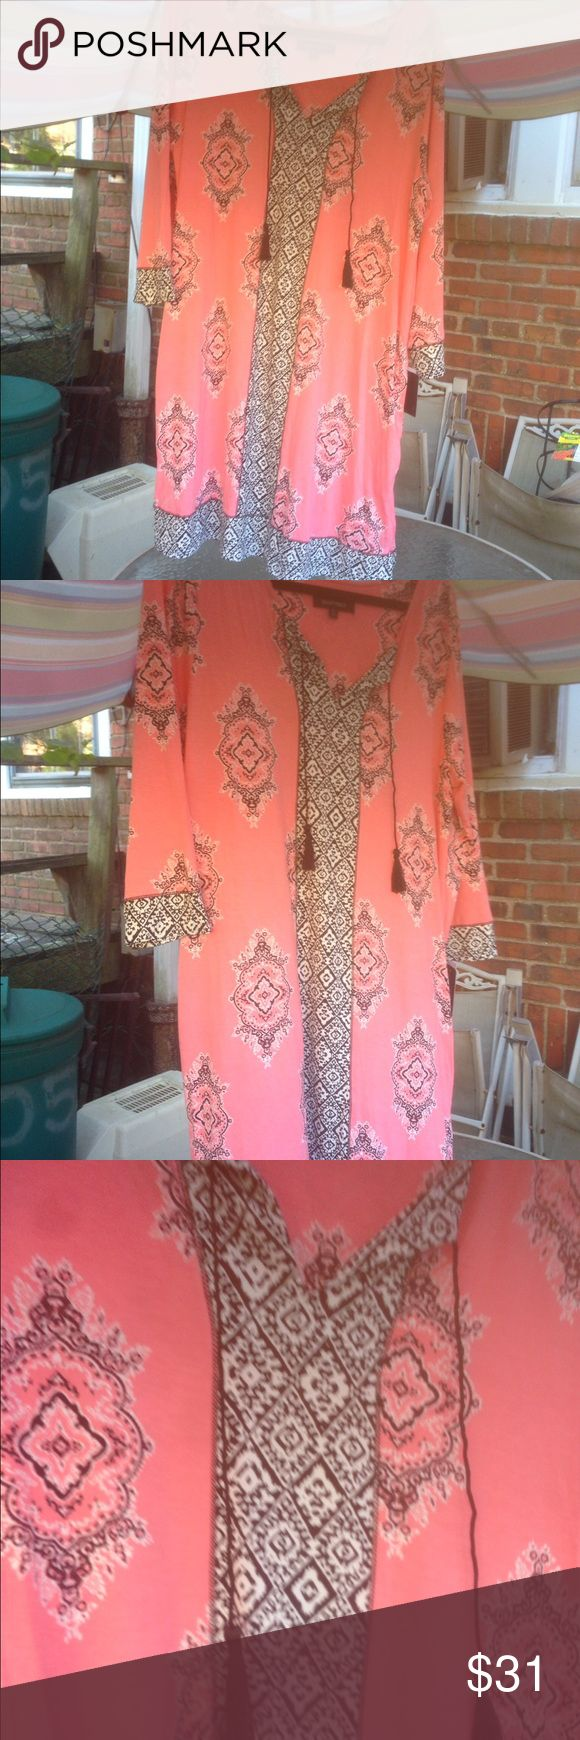 Gorgeous Ellen Tracy Nightgown Sz L BNWT Beautiful no ho chic nightie from Ellen Tracy. Great for those chilly evenings in bed. Doesn't look like the average moo moo. Simply stunning. Size Large. Ellen Tracy Intimates & Sleepwear Pajamas